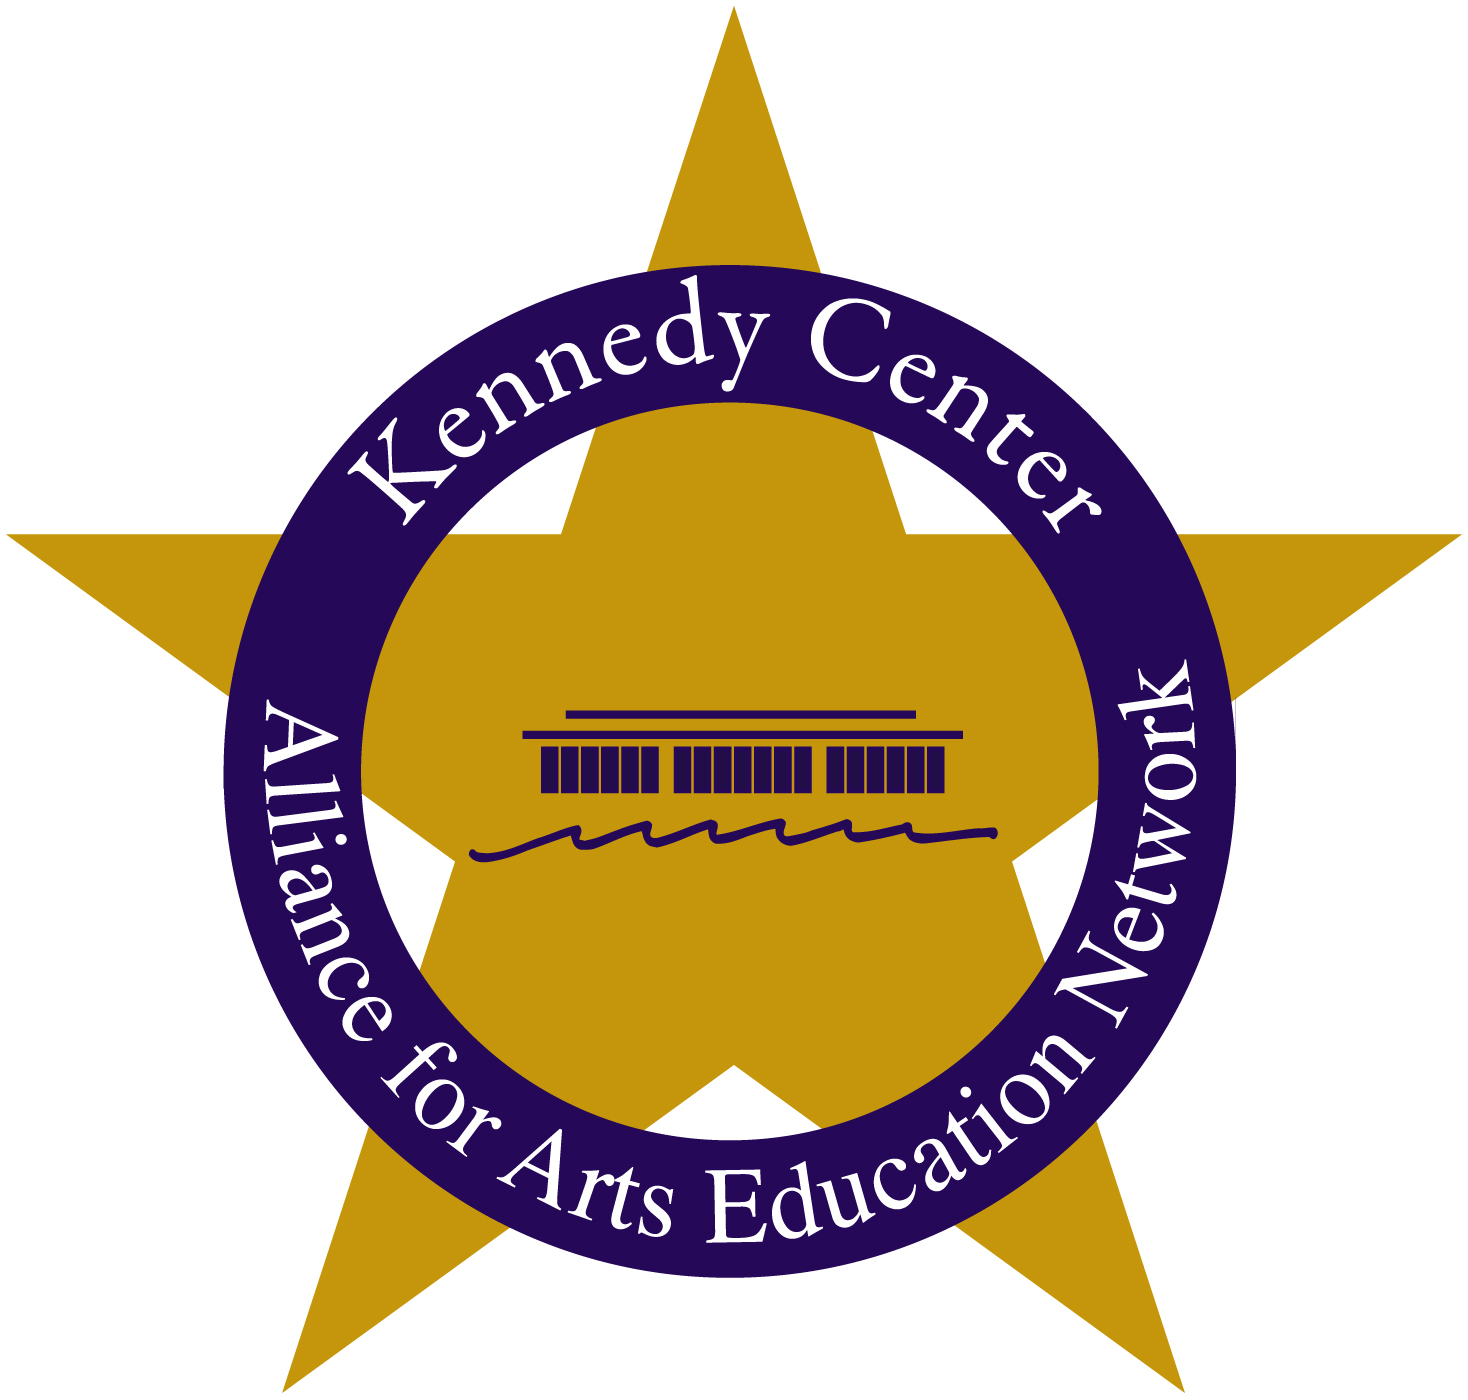 J. Kennedy Center for the Performing Arts School of Excellence.